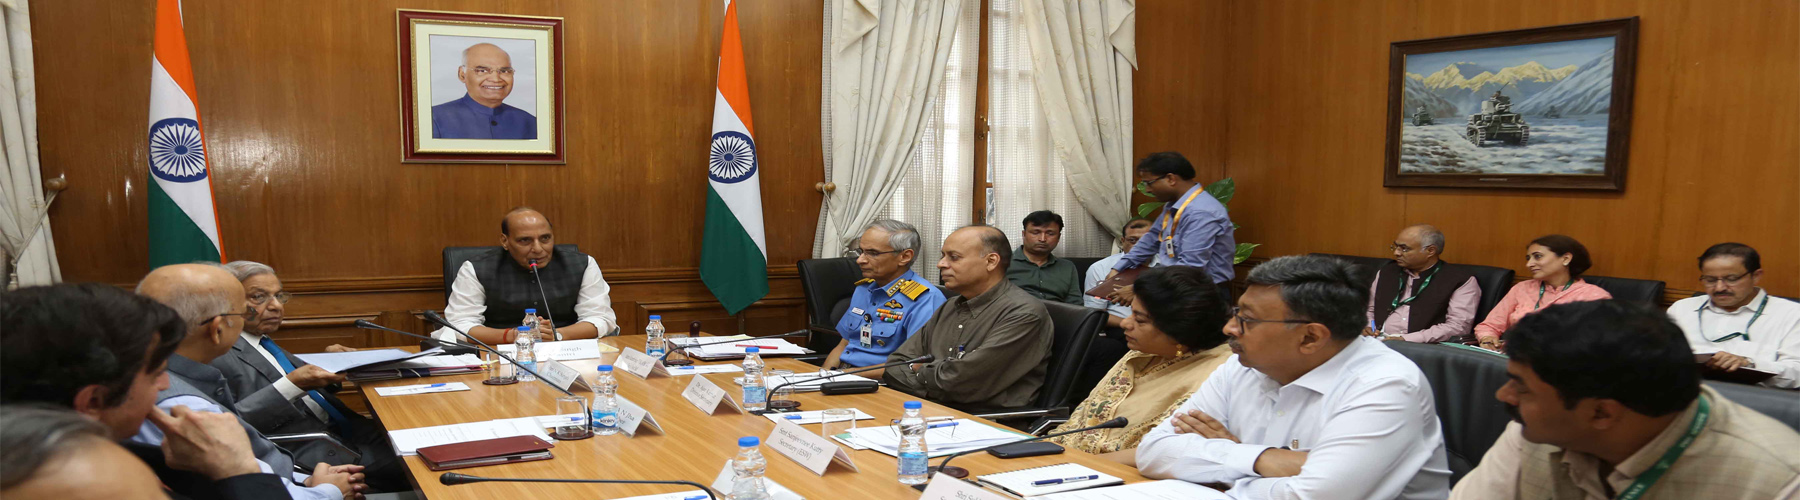 Raksha Mantri Shri Rajnath Singh chairing the meeting of 15th Finance Commission with senior officials of Ministry of Defence in New Delhi on August 30, 2019